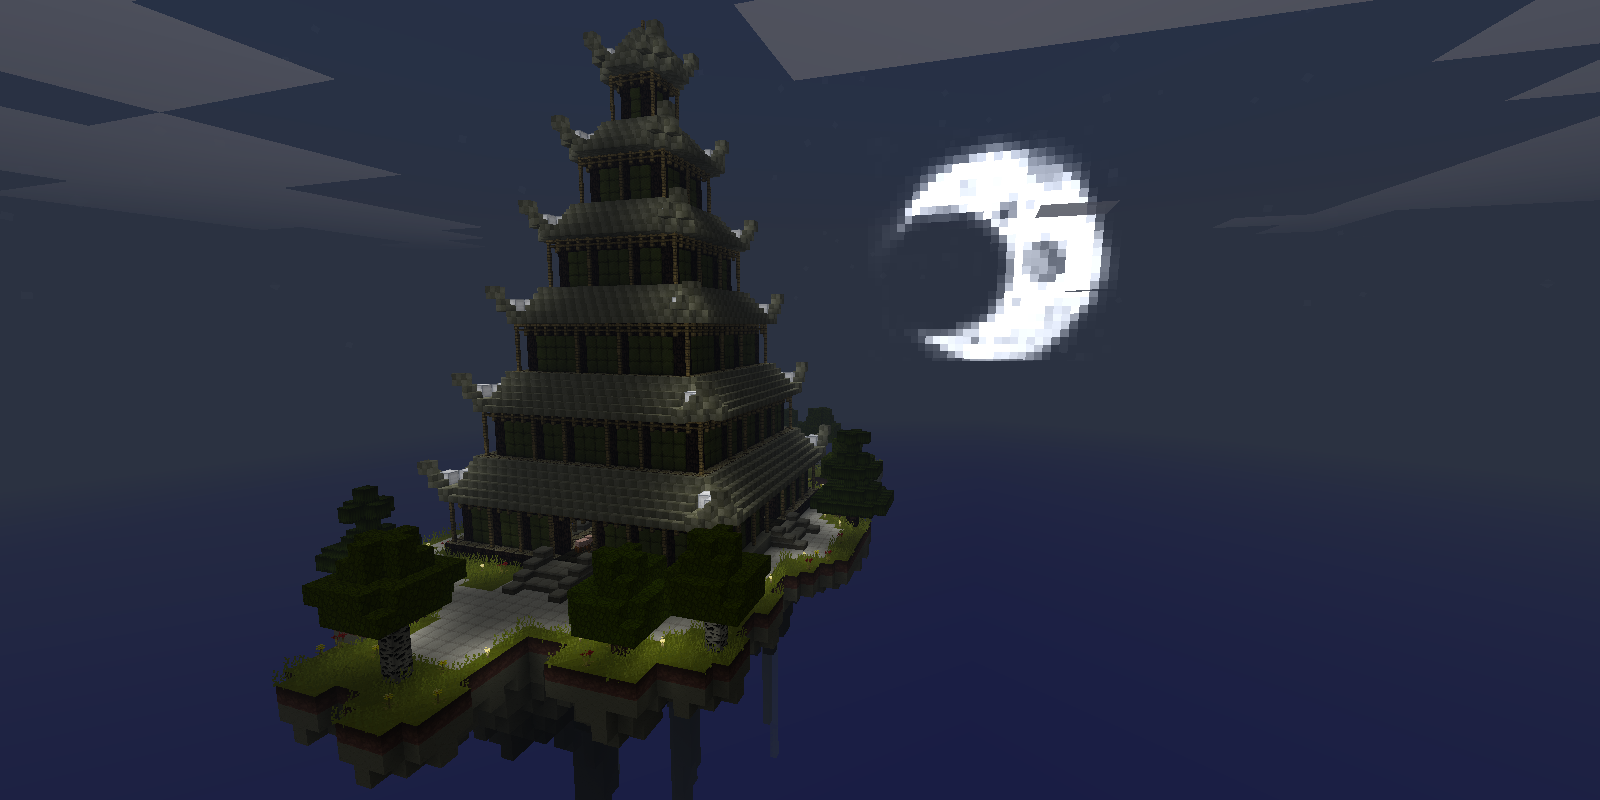 (41k Views on Reddit) Japanese Pagoda on a Floating Island